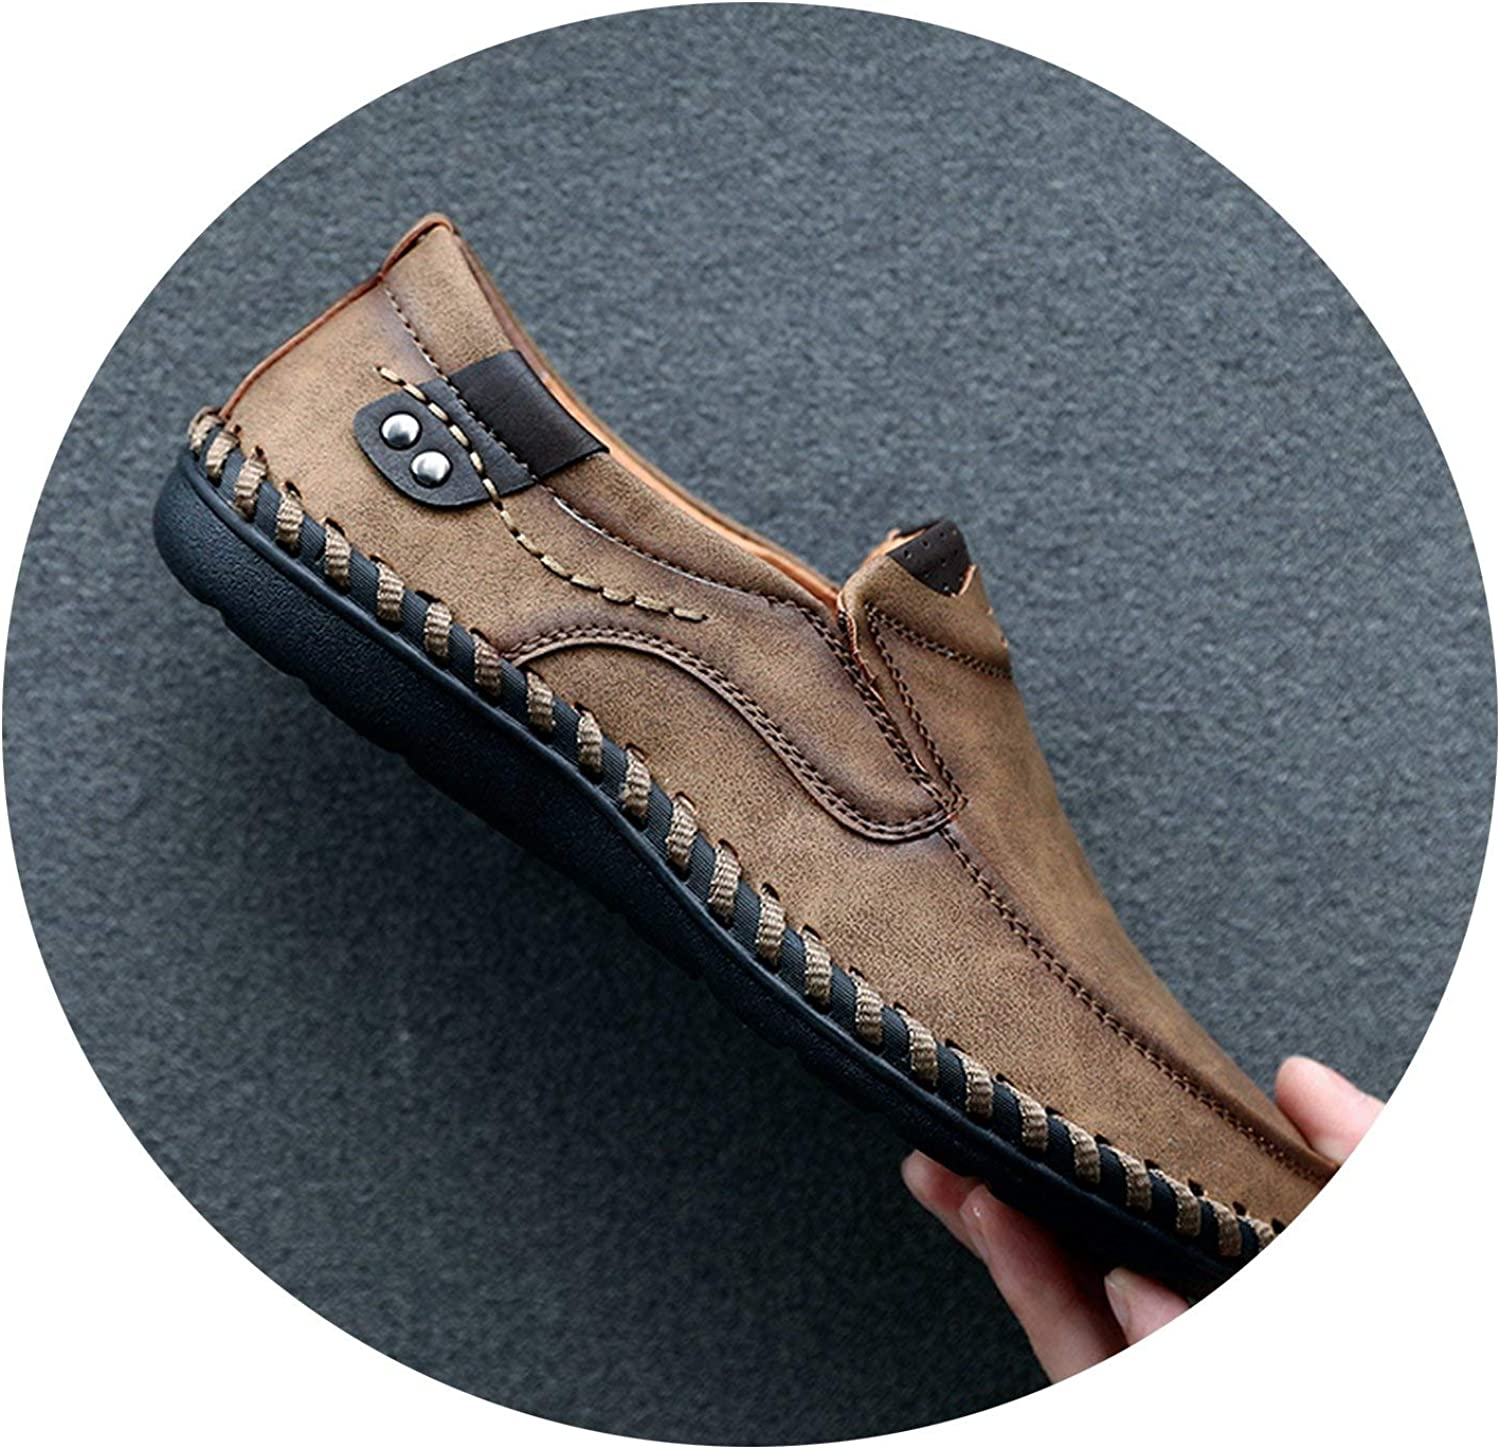 OH WHY Handmade Genuine Leather Mens shoes Casual Breathable Driving shoes Slip on Moccasins